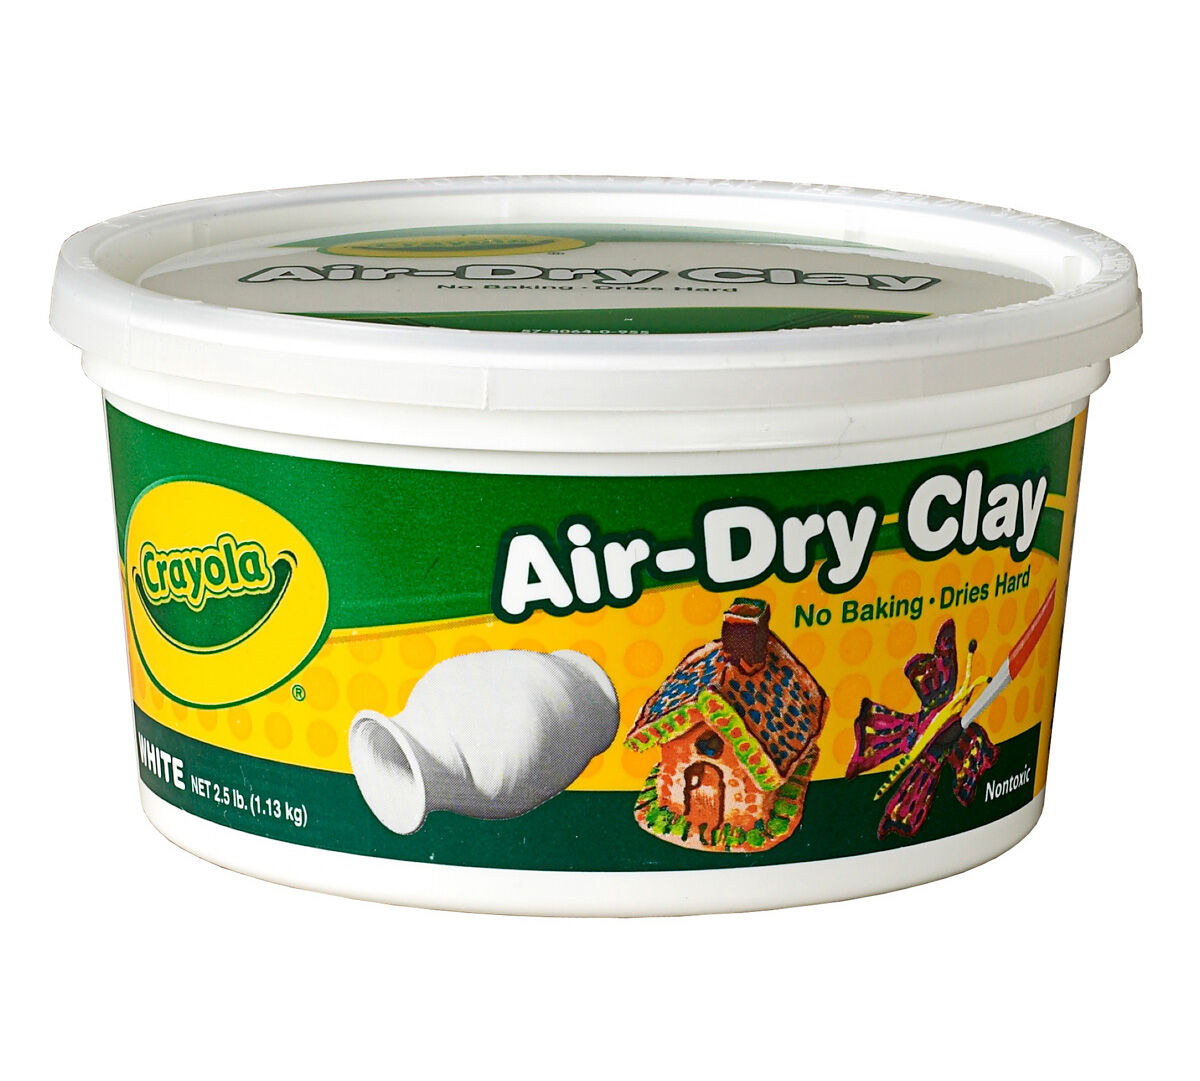 Crayola Air-Dry Clay is a fine, natural white earth clay that air dries to a hard solid. No kiln or oven necessary! Easy to use with traditional modeling techniques, it's also a snap to clean up. Air-Dry Clay is smoother, finer and less sticky than traditional clay.